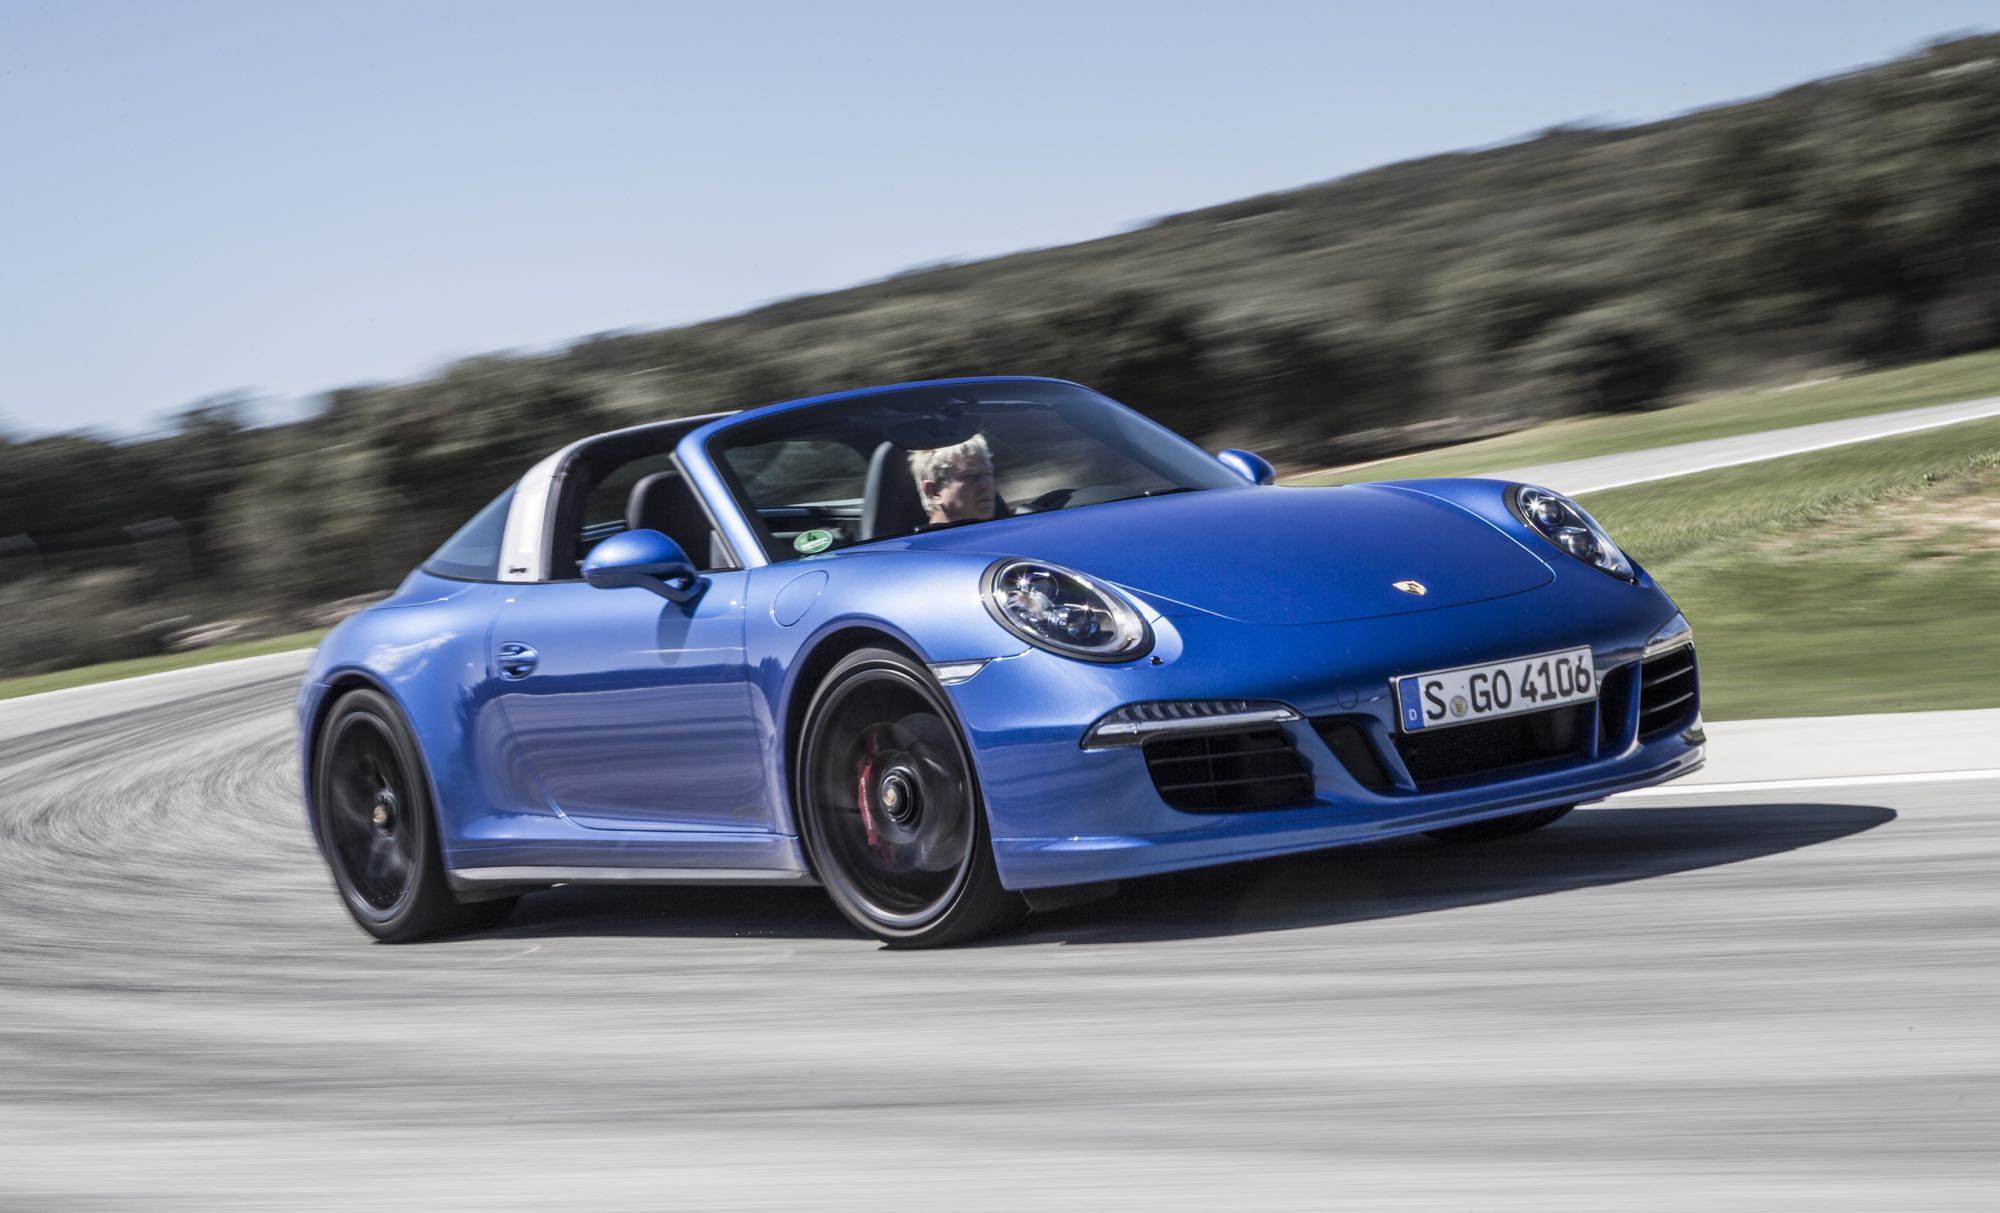 Porsche 911 Targa 4 Gts Officially Launches At Ascari